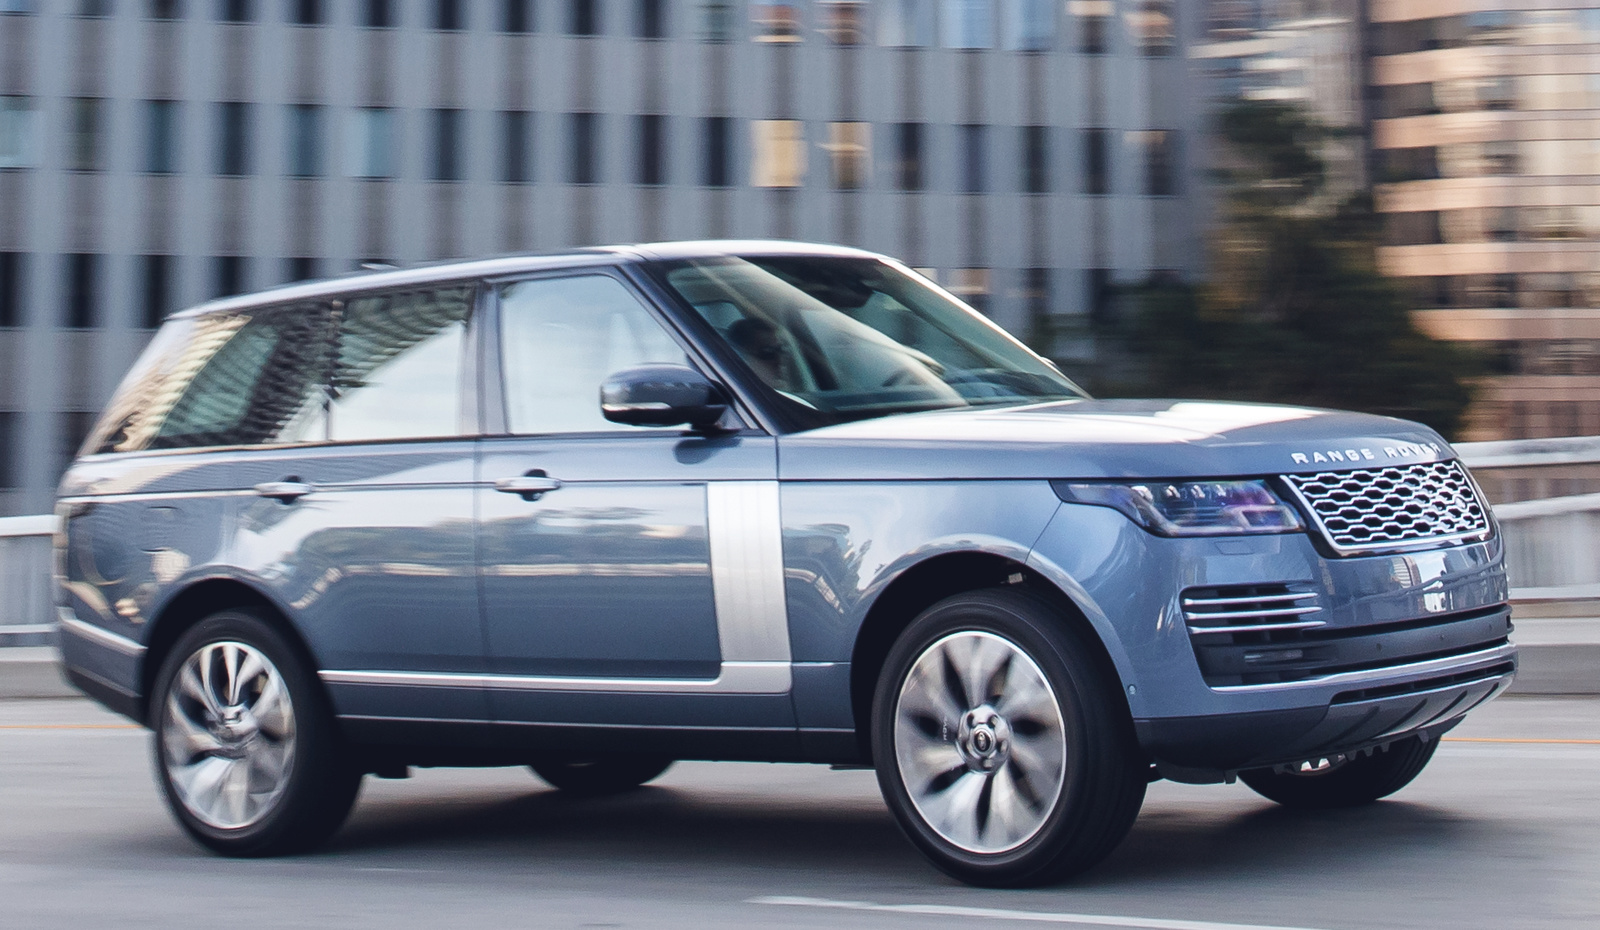 2018 Land Rover Range Rover - Overview - CarGurus